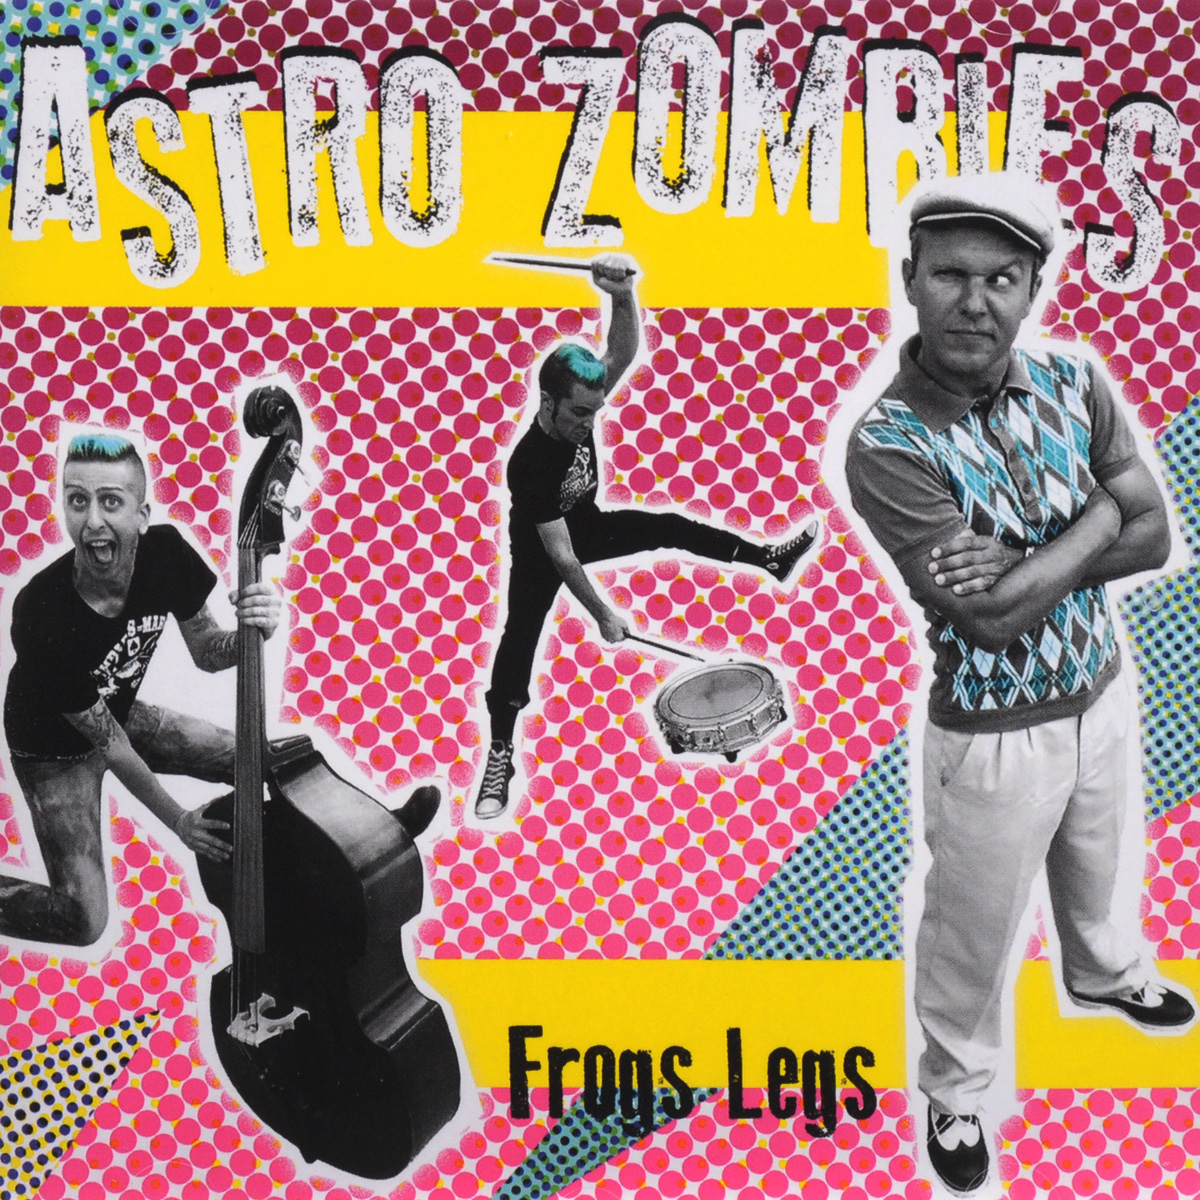 Astro Zombies Astro Zombies. Frogs Legs astro city confession